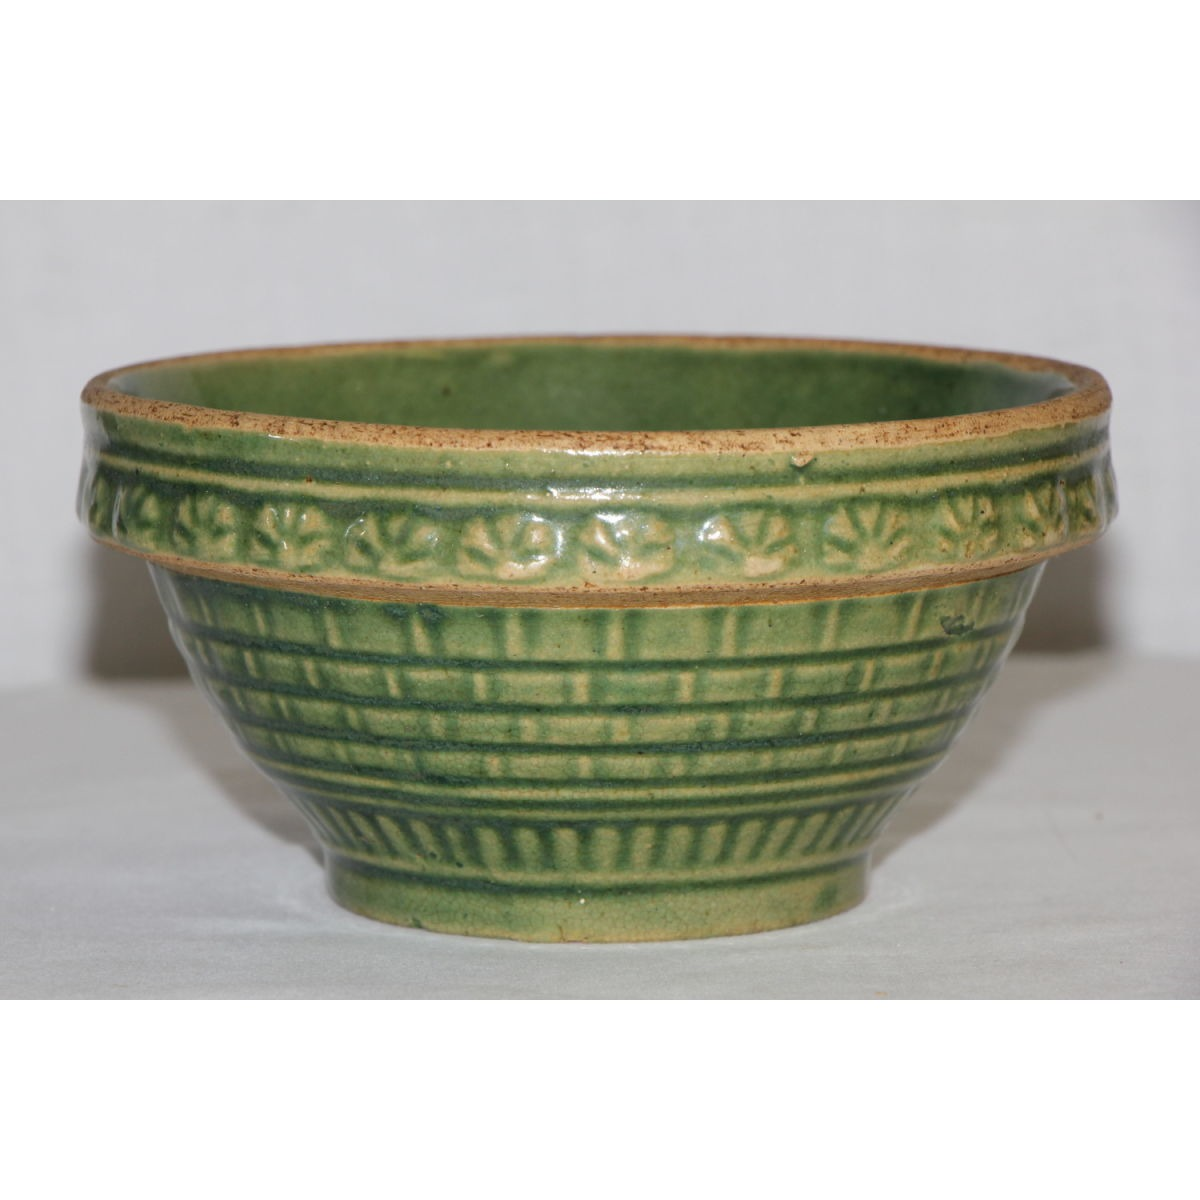 "Fabulous 5"" Green Glazed Scarce Shell and Brick Wall Bowl"